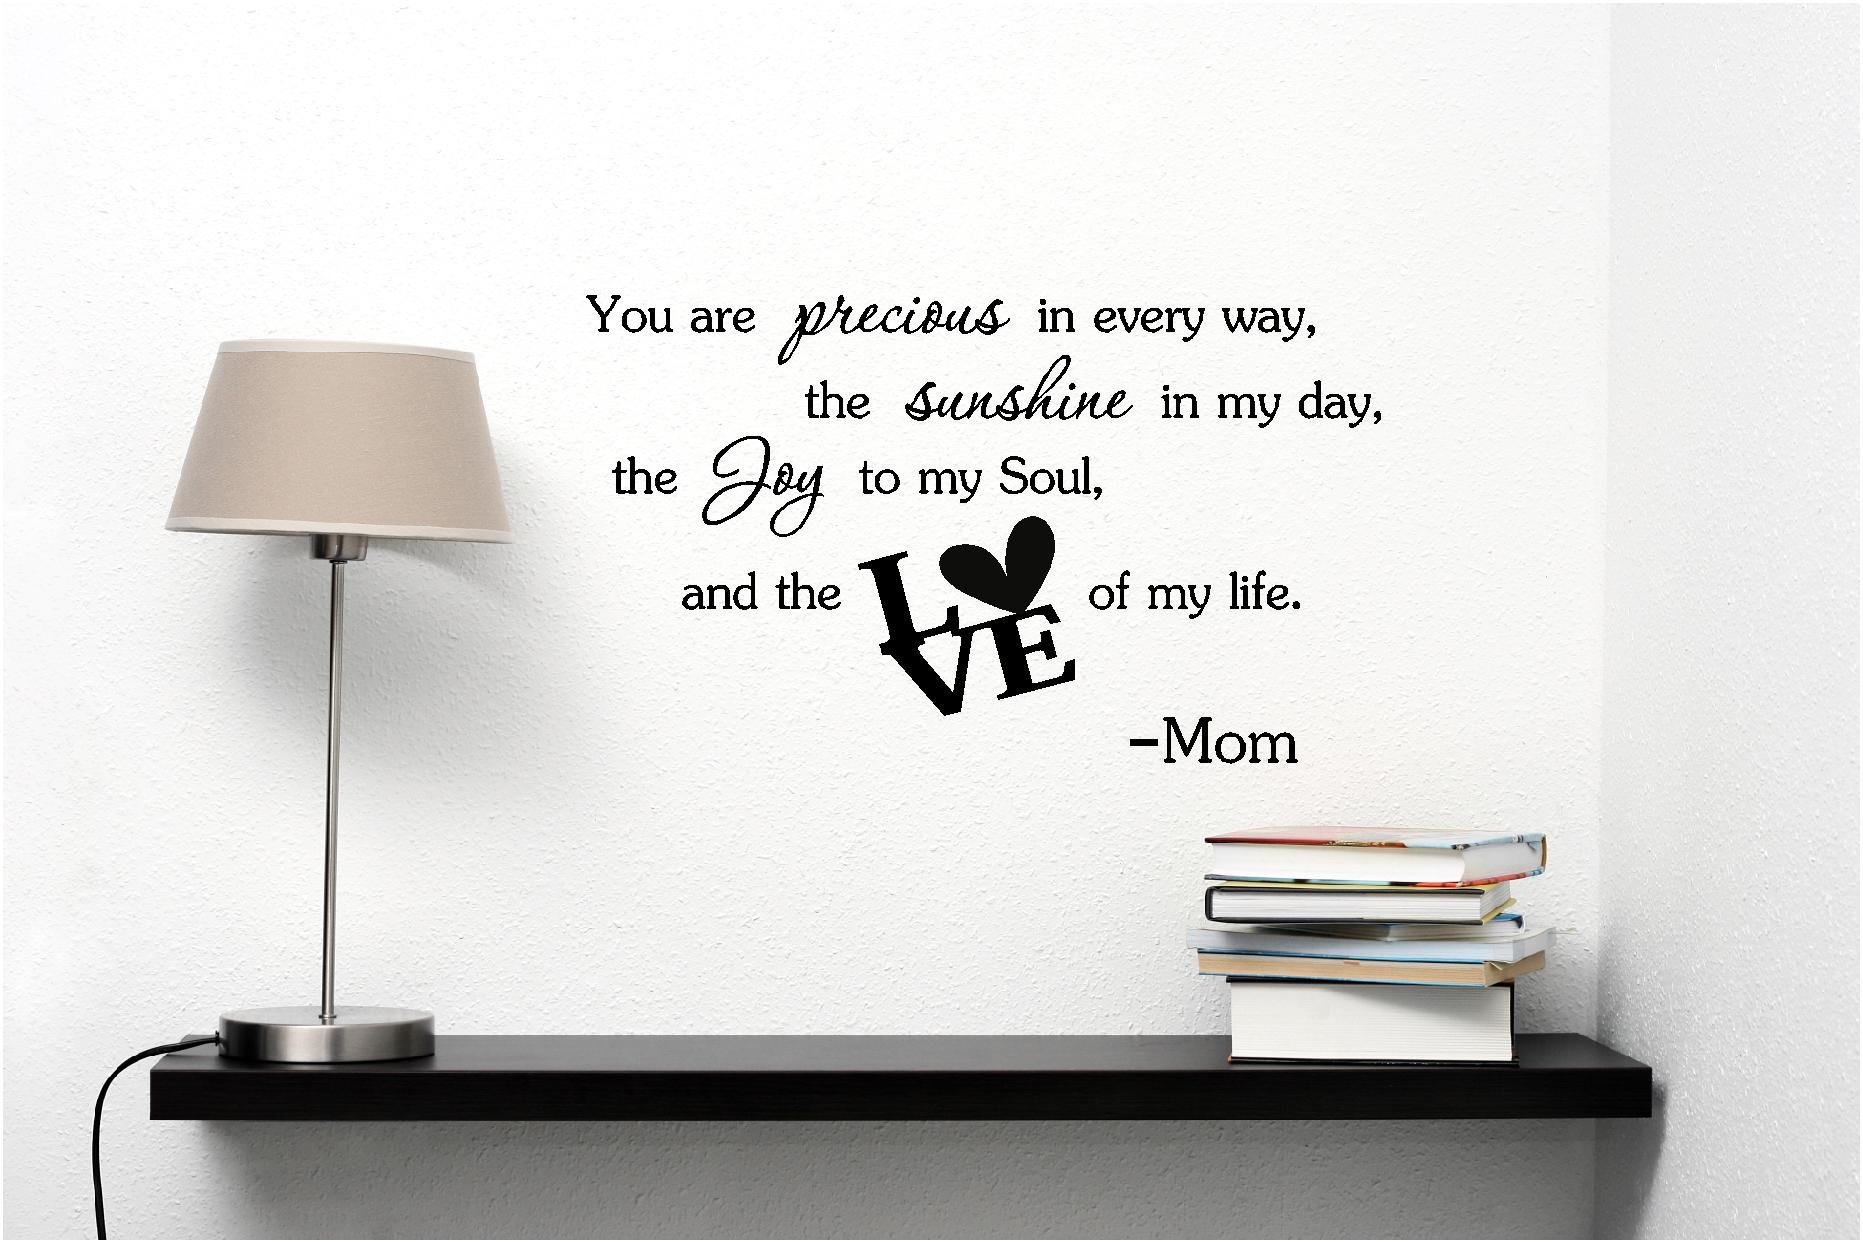 Epic Designs You are precious in every way, the sunshine in my day, the joy in my soul, and the love of my life. Mom cute baby nursery inspirational wall art sayings